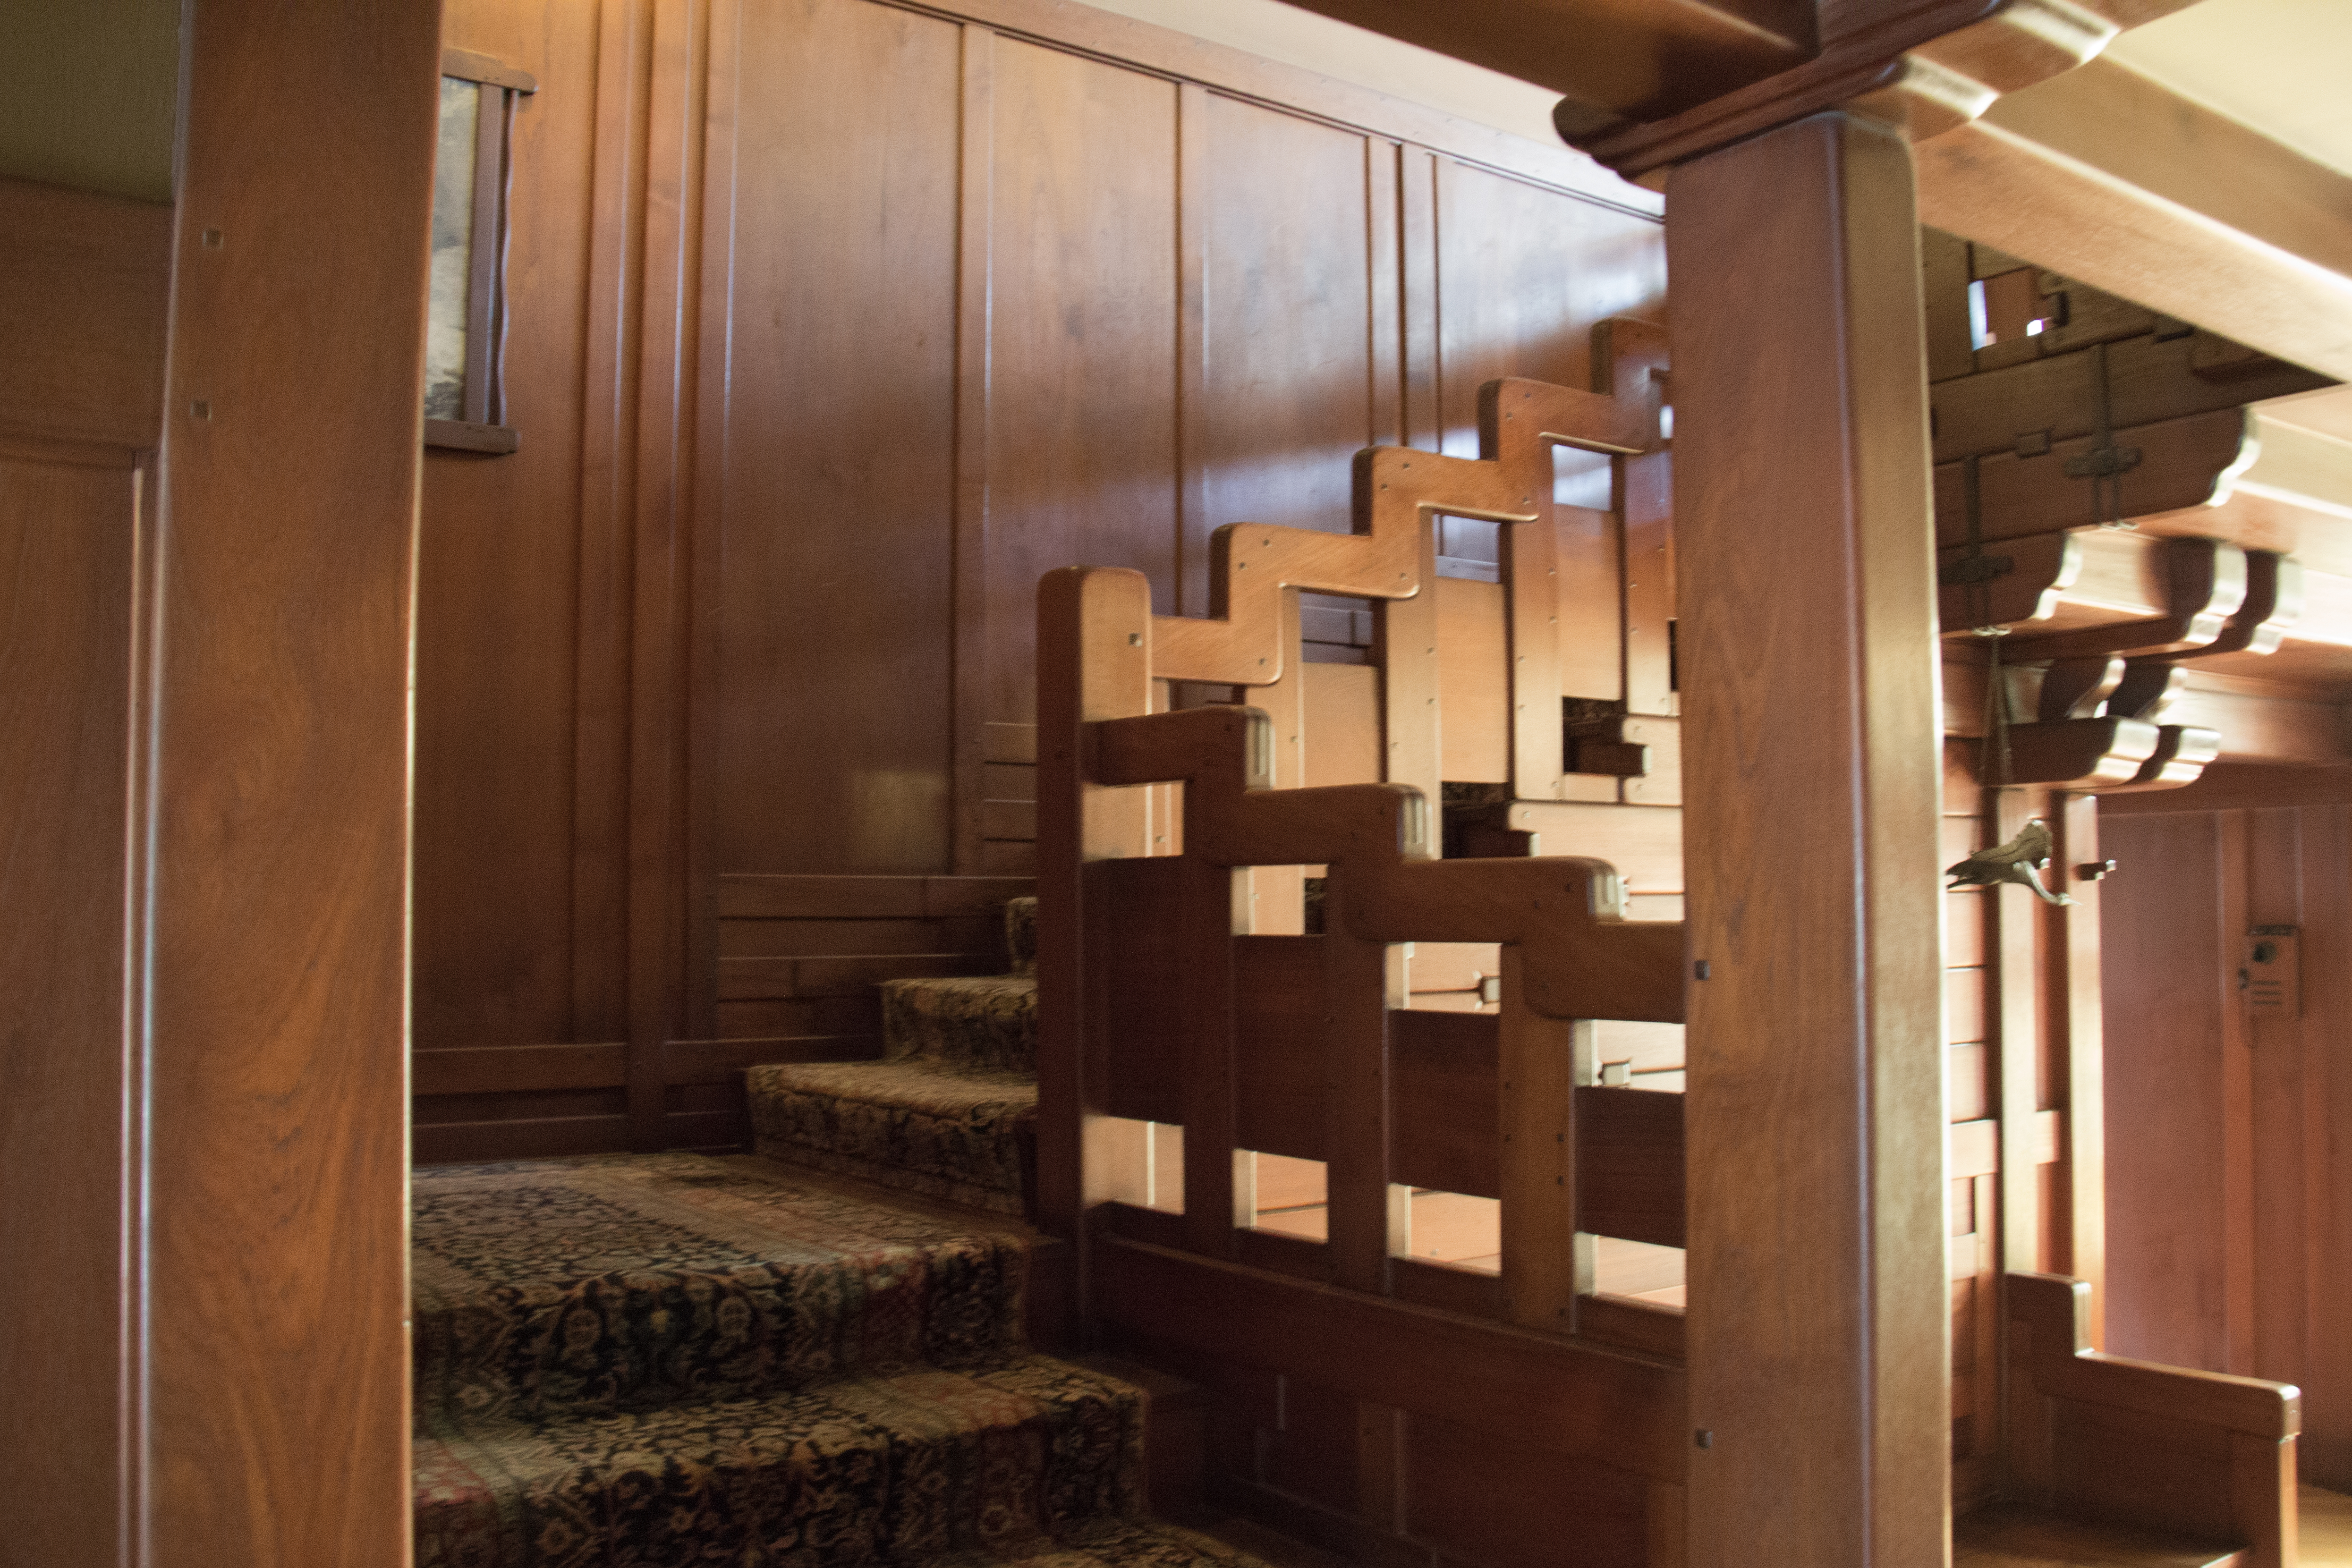 The main stairs leading to the second floor Photography by Thomas HarlanderTour the Servants Quarters at the Gamble House. Gamble House Interior. Home Design Ideas